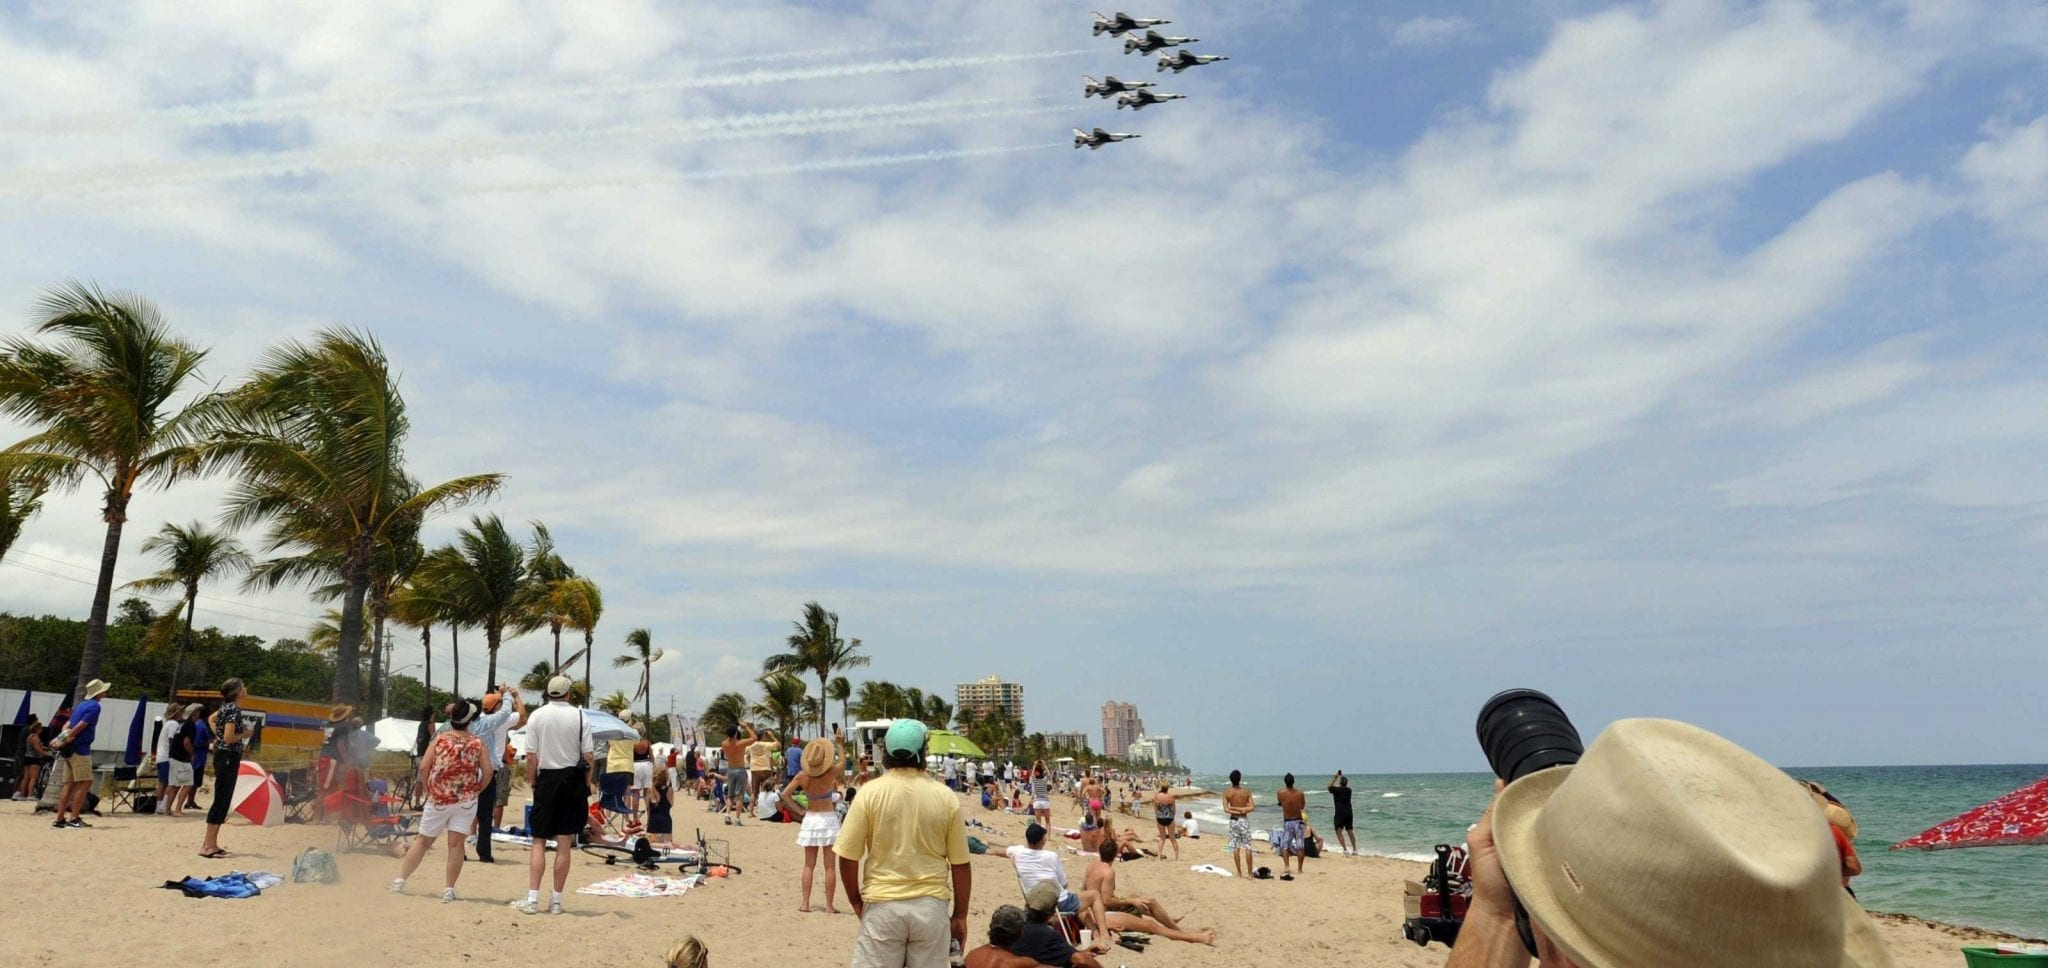 Fort Lauderdale Air Show 2020 Guide